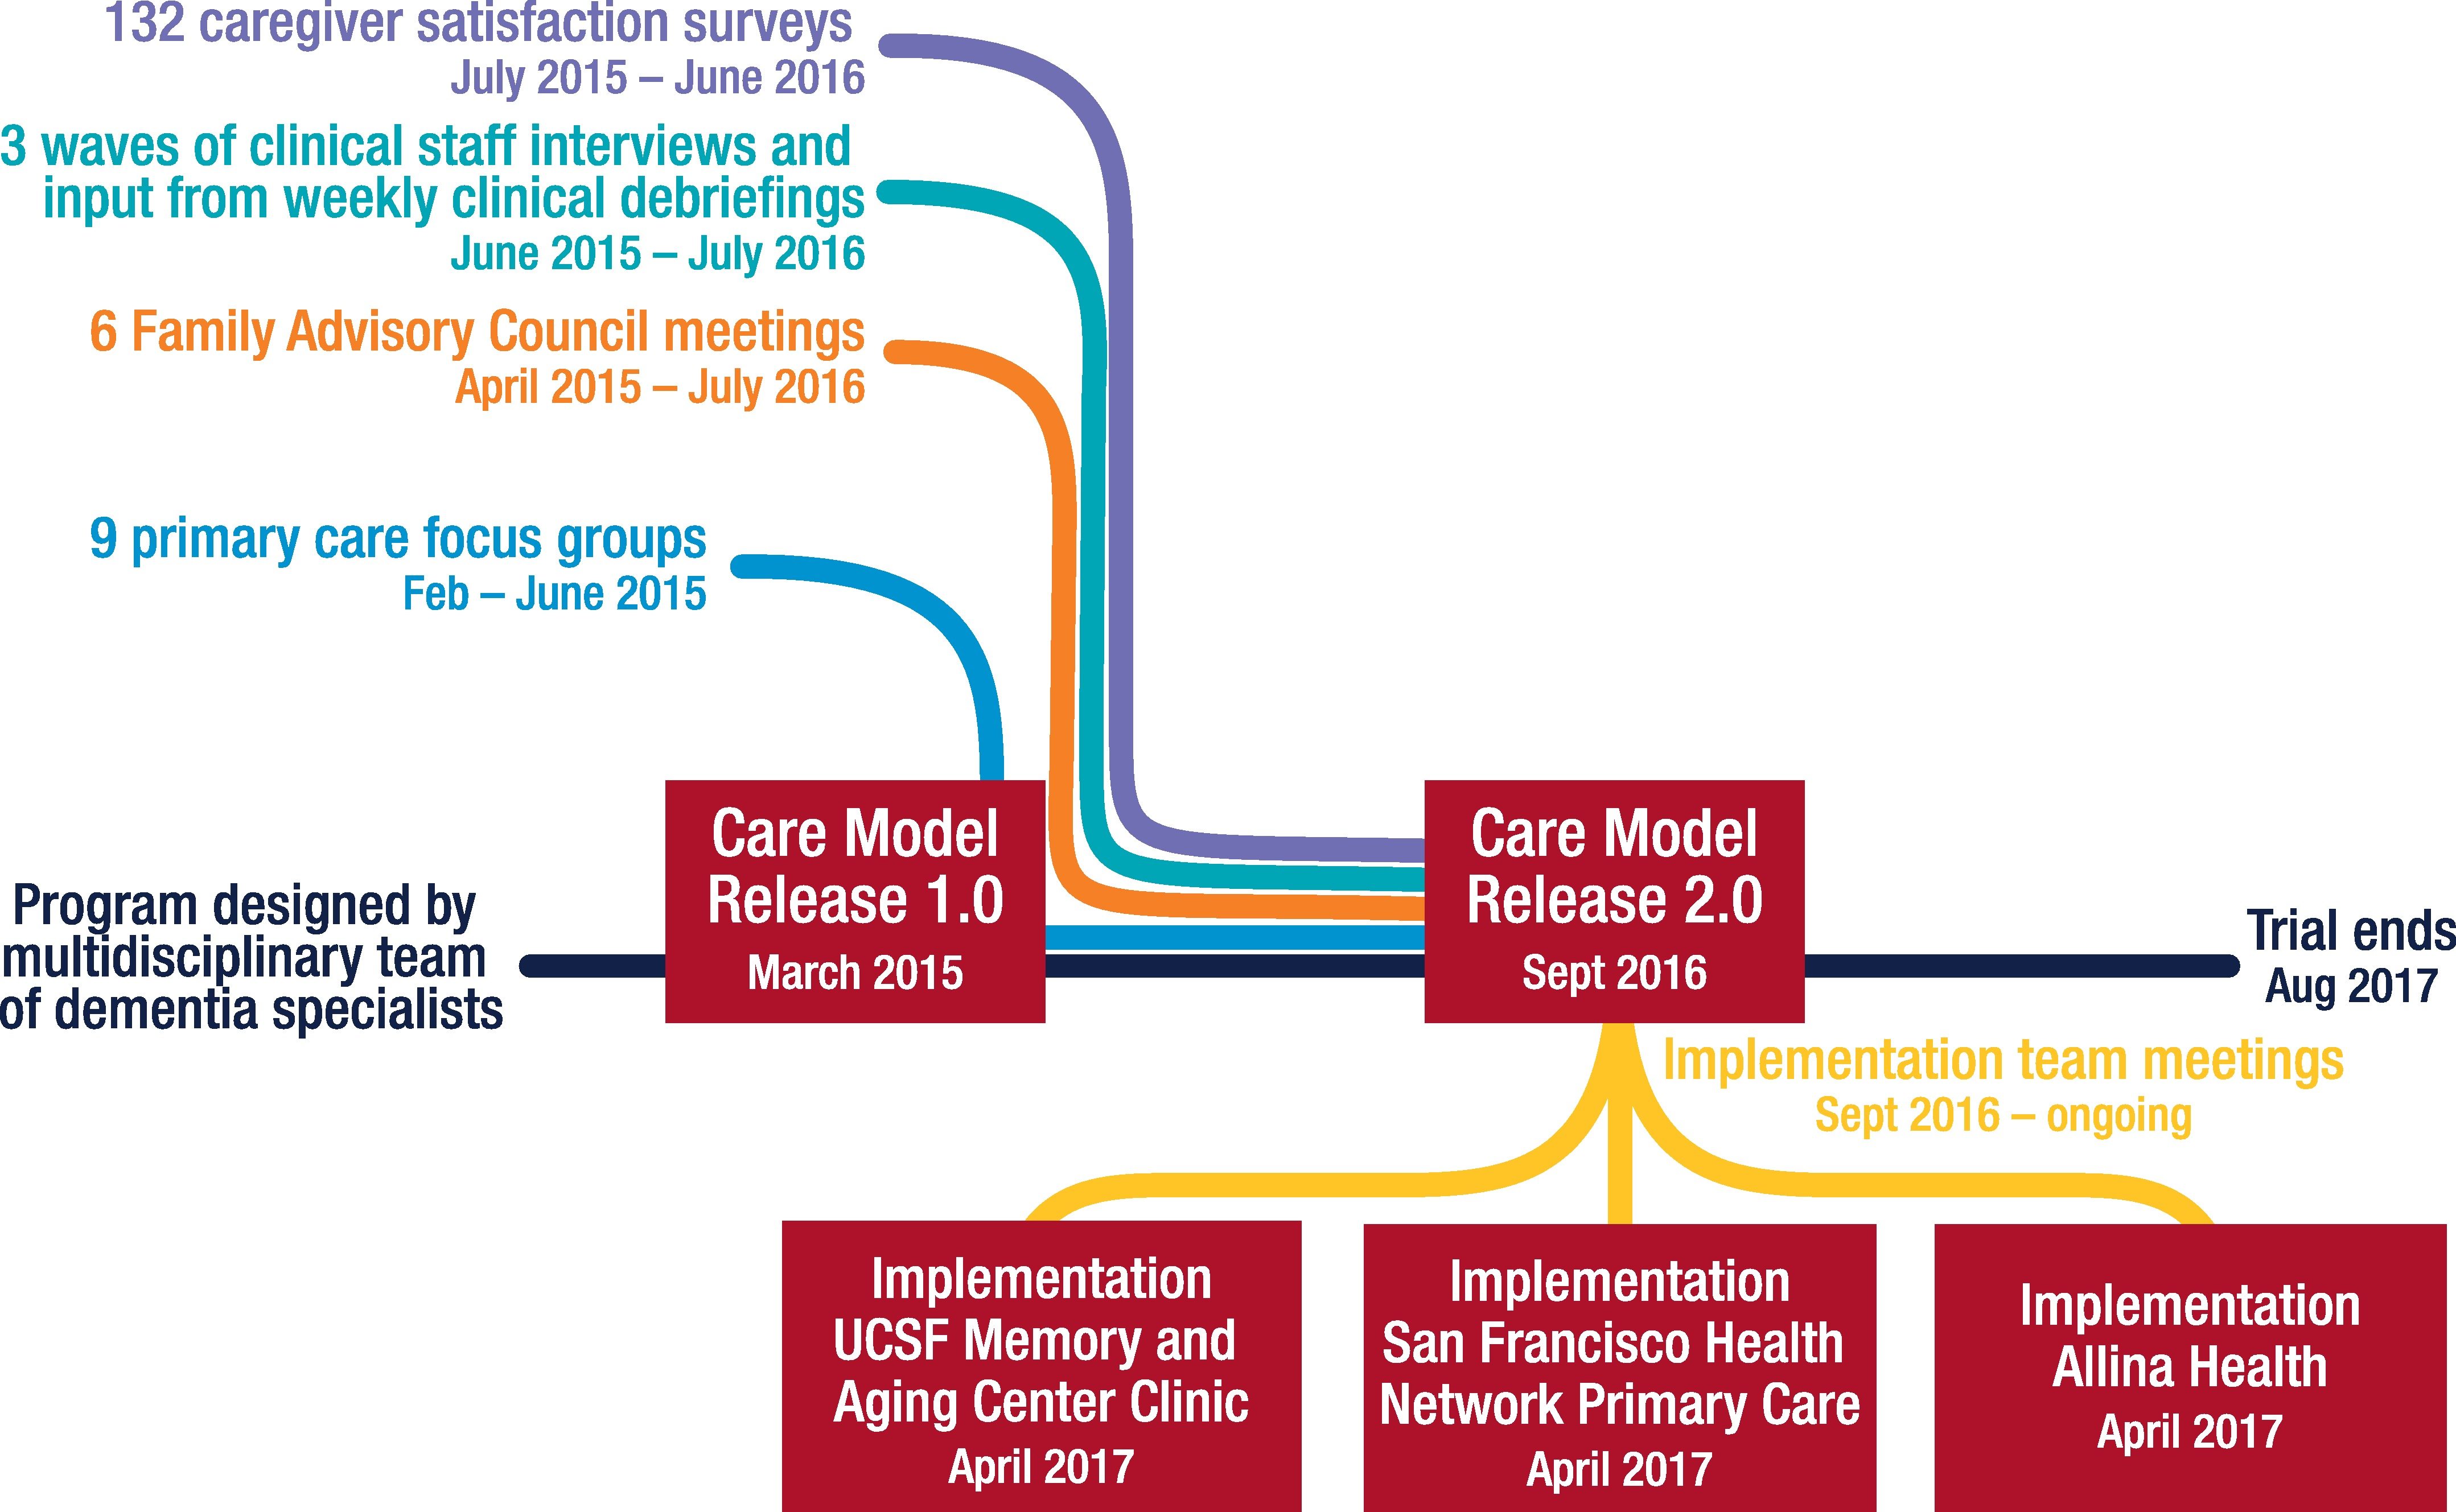 Agile development of the care model.